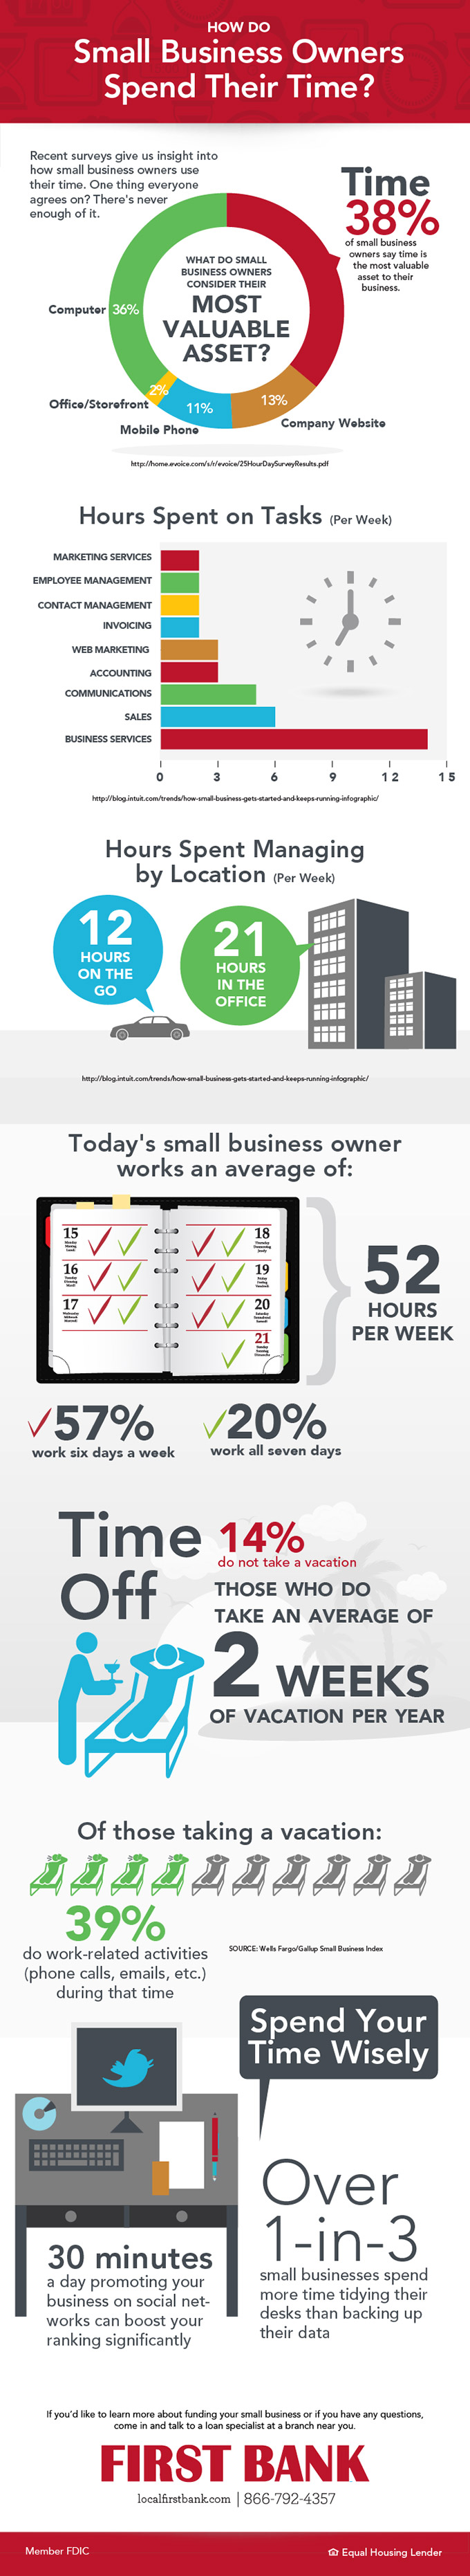 How Do Small Business Owners Spend Their Time? [INFOGRAPHIC]